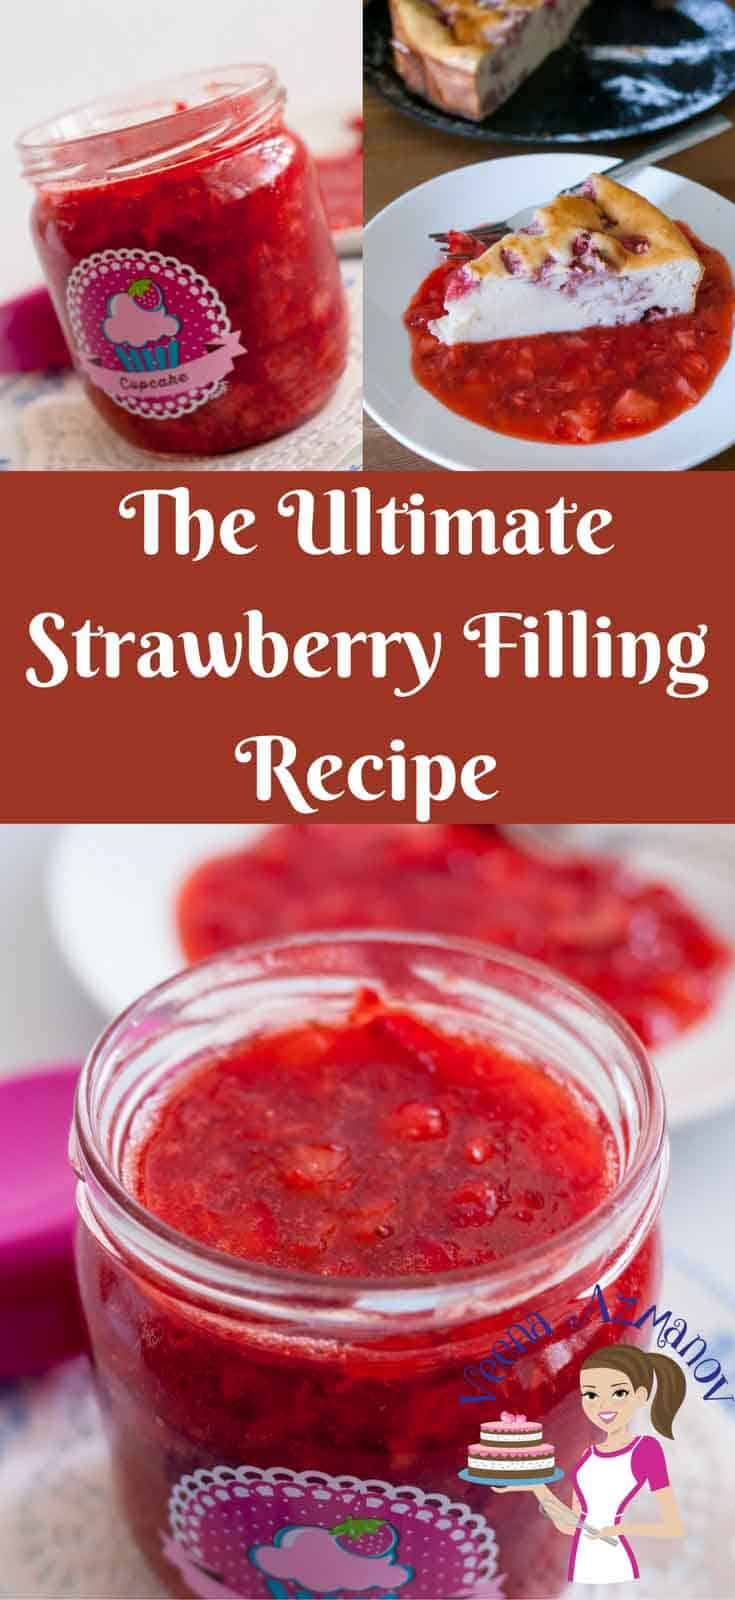 A strawberry Filling is the ultimate dessert that works a big treat is endless recipes. From Cake Fillings, Tart fillings,  brushed over fruit tarts, or topped over your favorite ice cream.  This recipe is so simple and easy you will never want to buy a can of strawberry filling ever again.